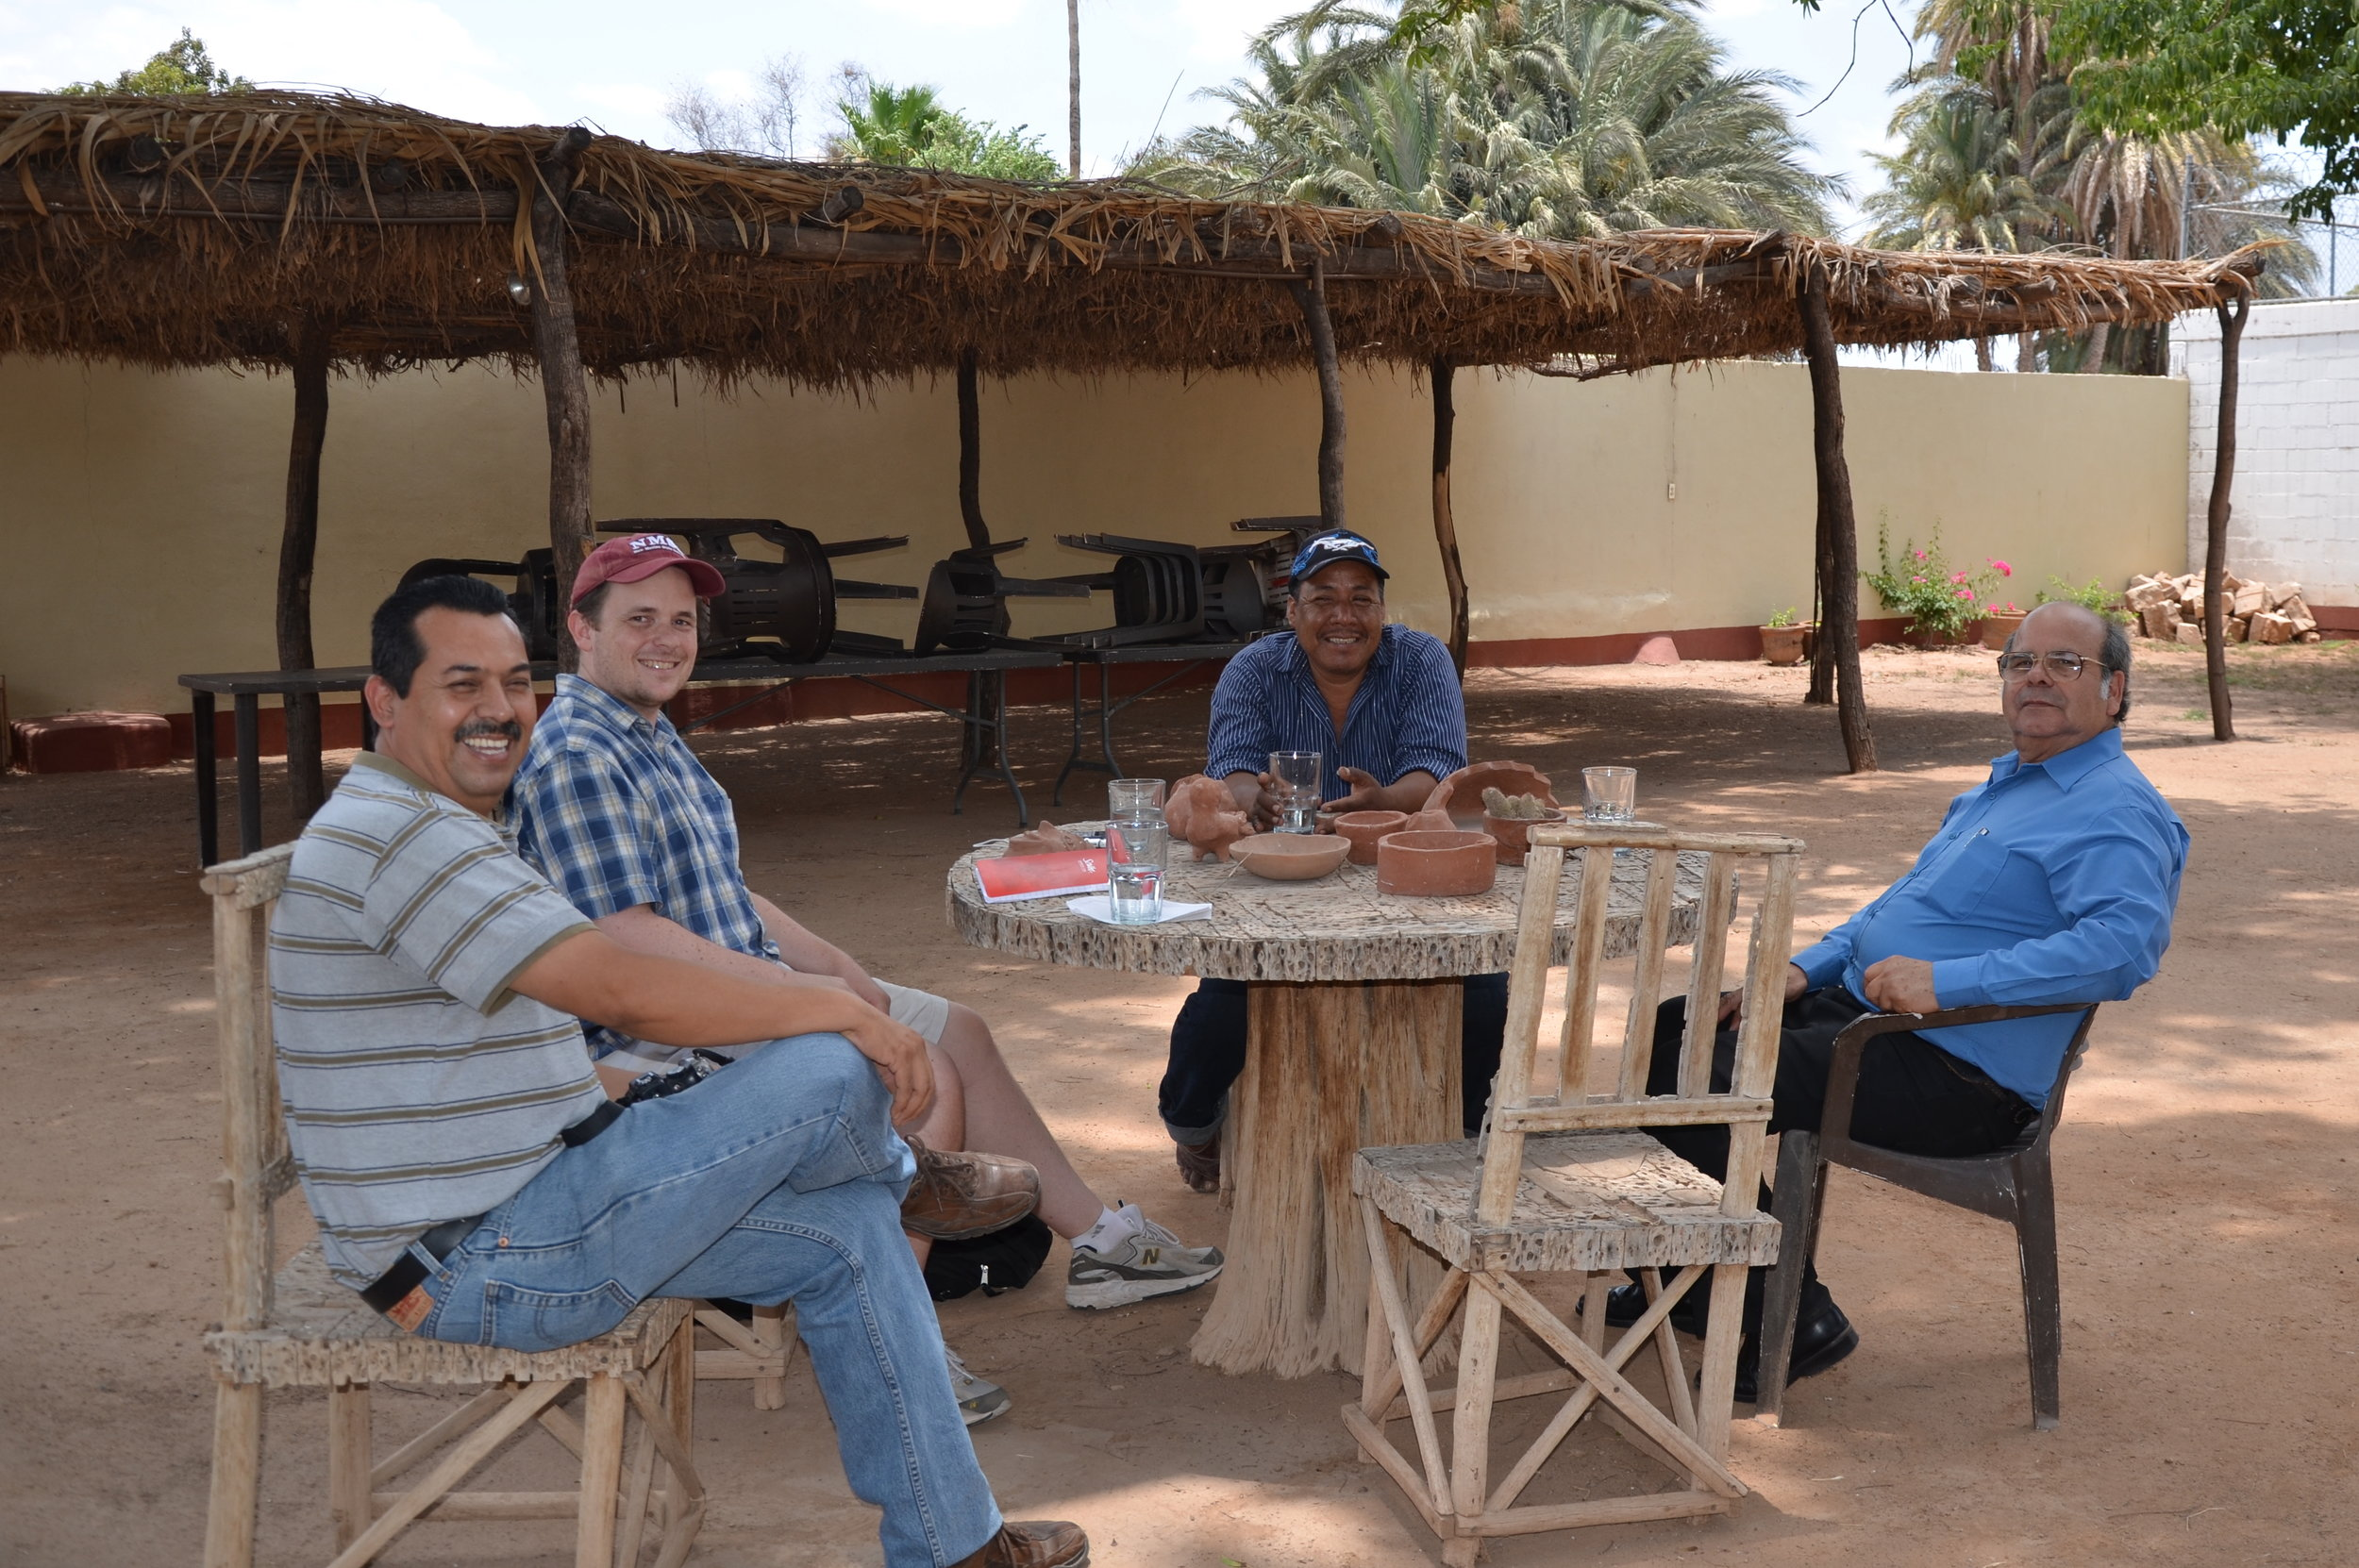 Yaqui Discussions about the Past